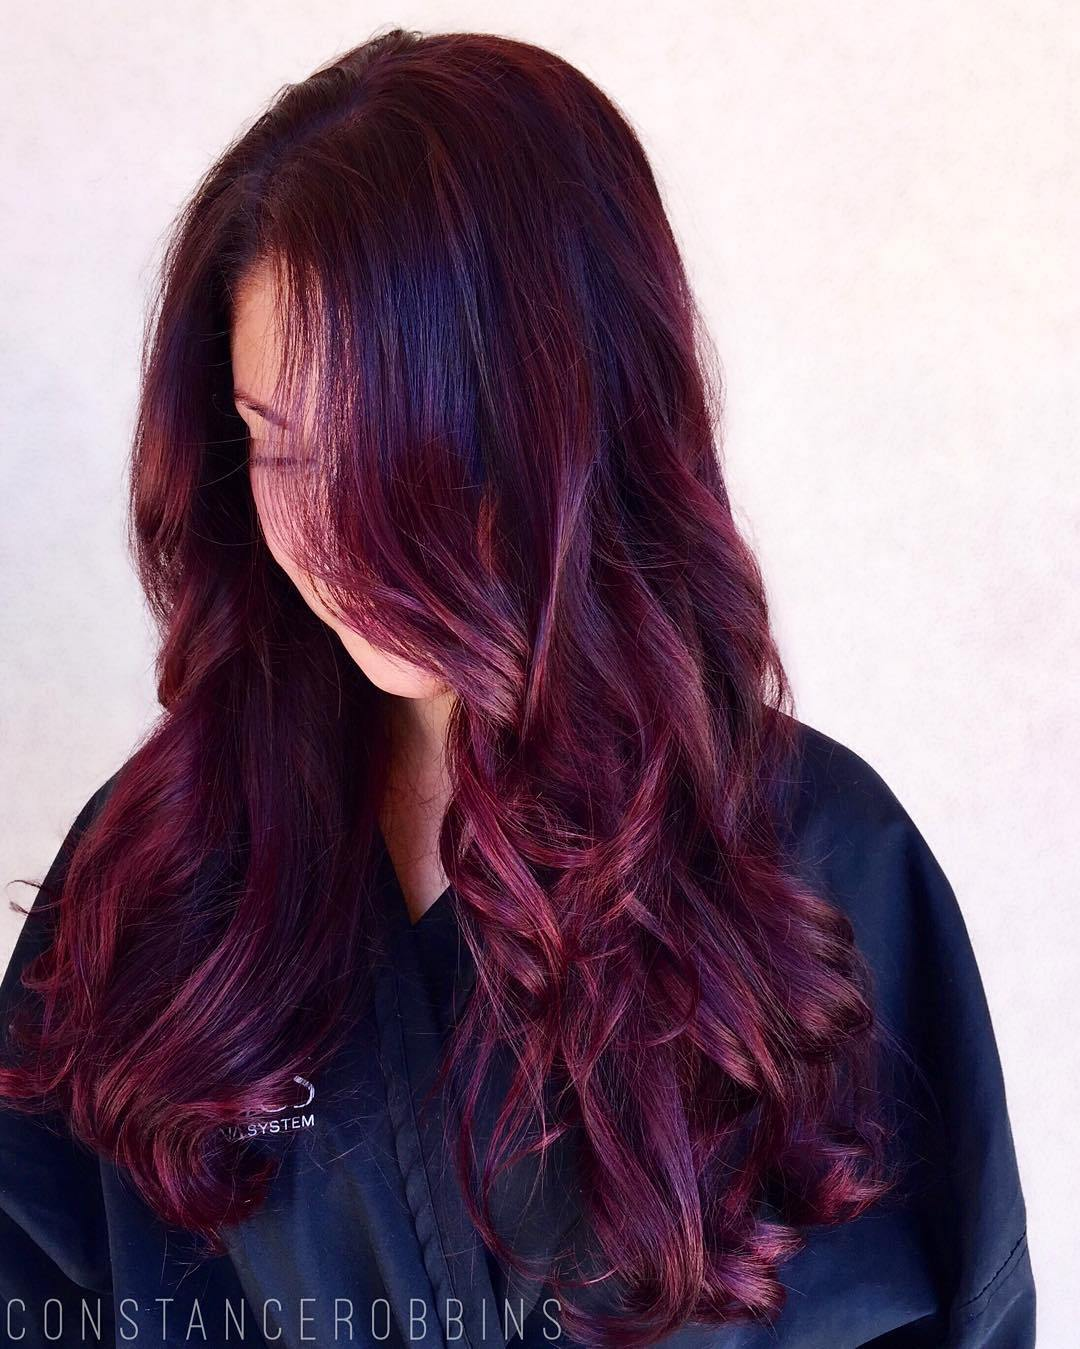 Fashion week Purple red dark hair photo for woman